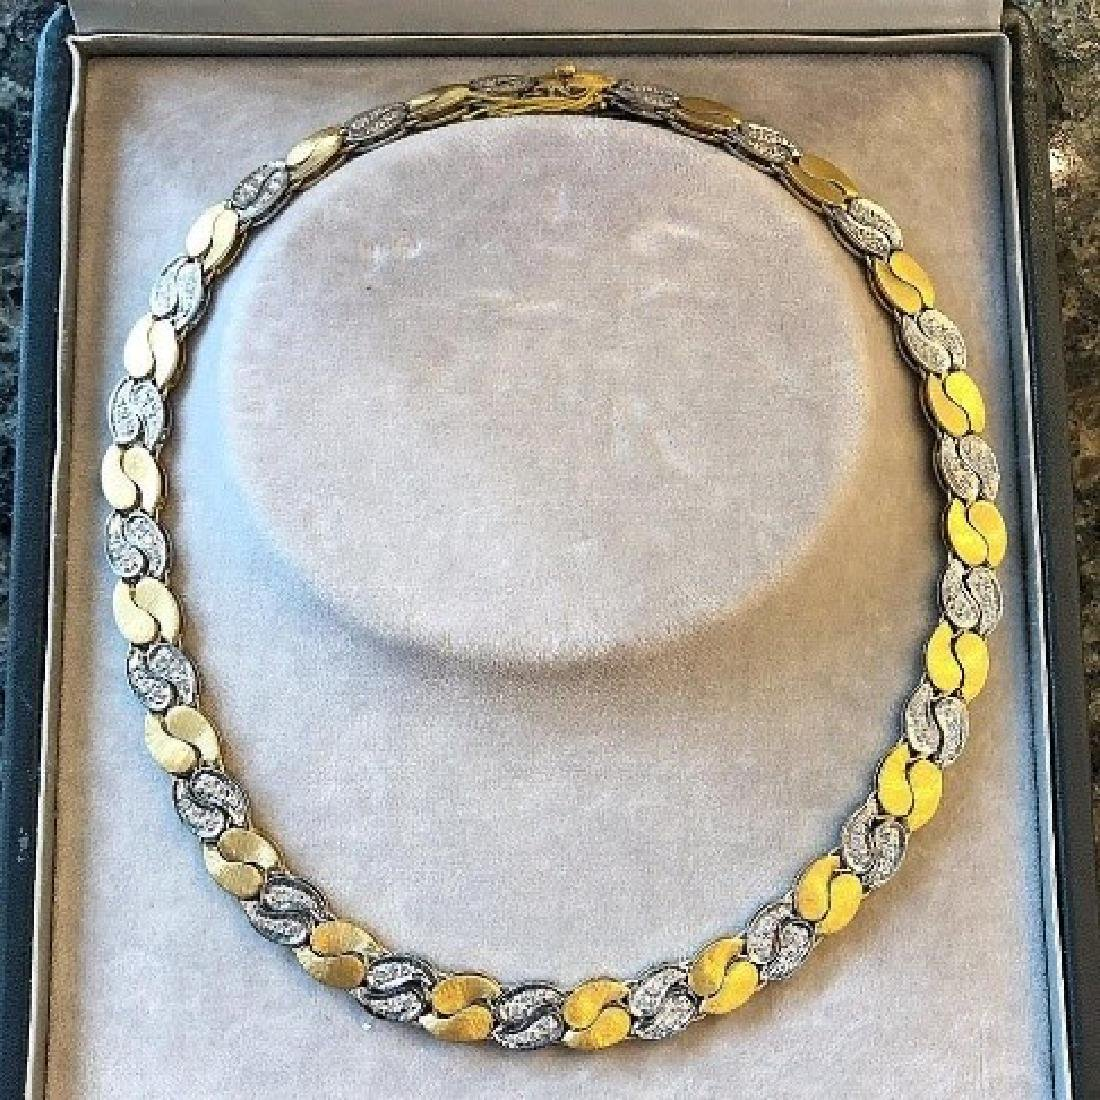 Mario Buccellati Diamond Necklace.